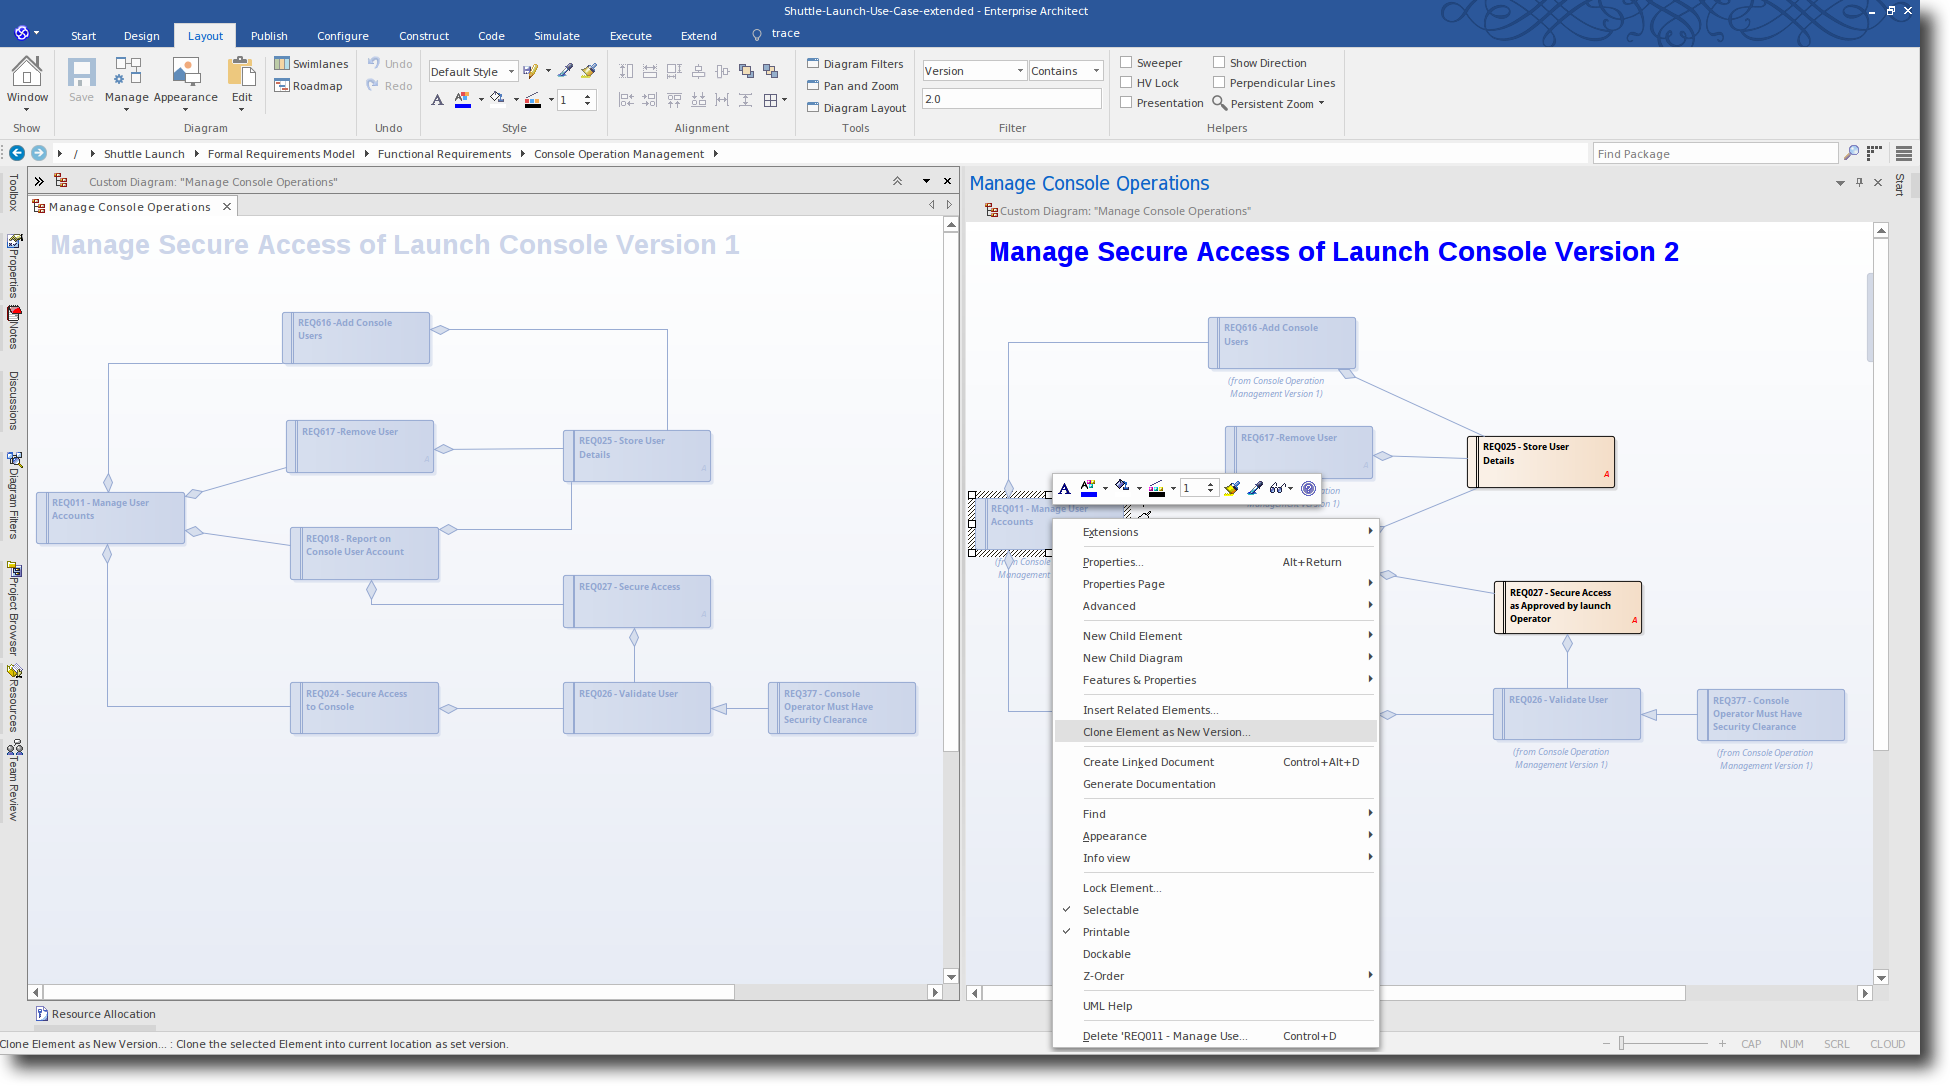 Enterprise Architect 13: Time Aware Modeling - Create a Clone Element as New Version